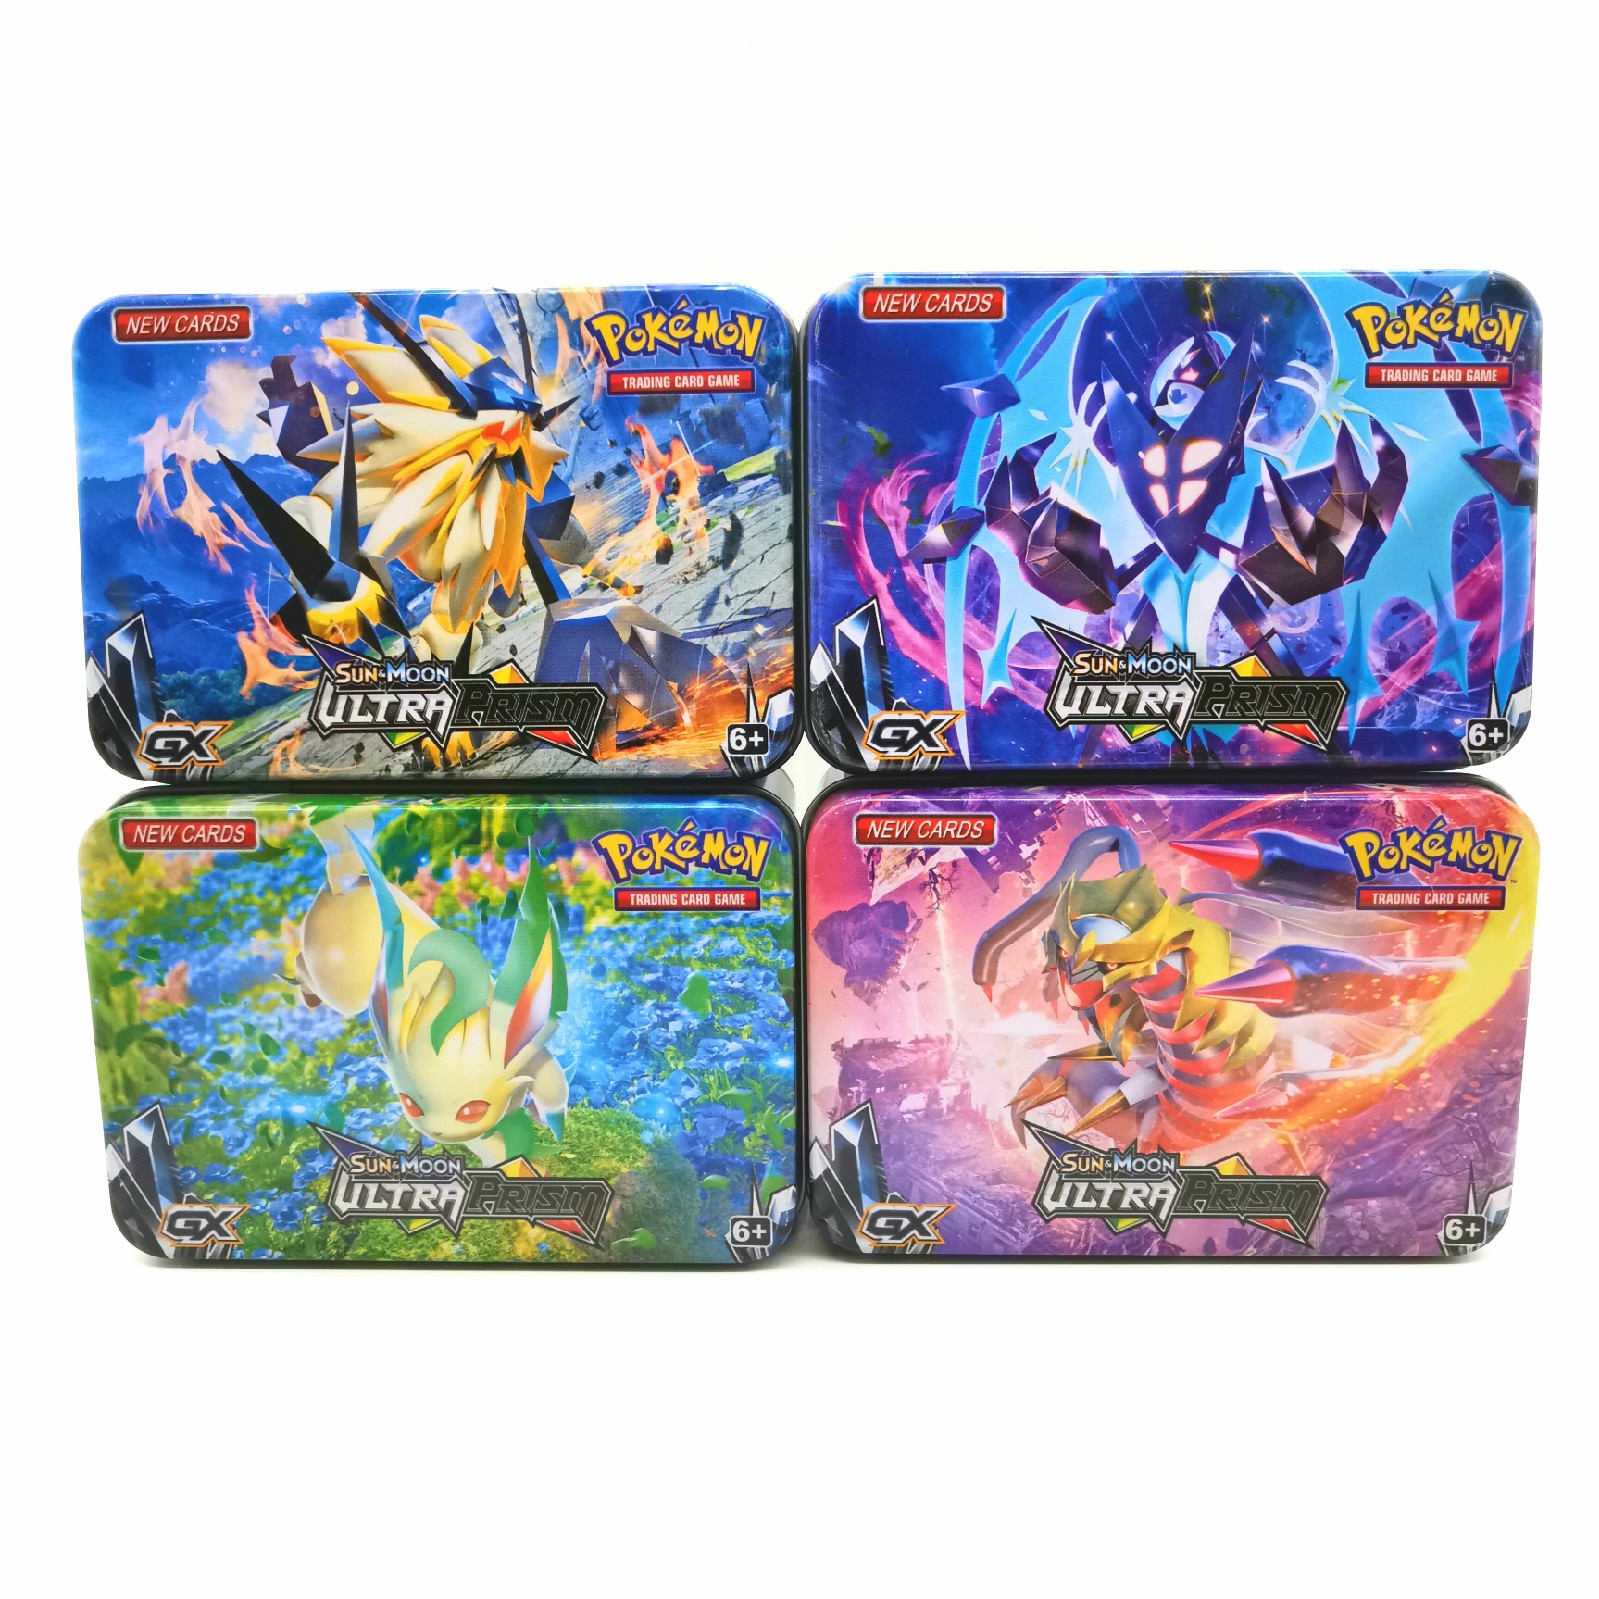 42pcs/set Iron Box Pokemon TAKARA TOMY Battle Toys Hobbies Hobby Collectibles Game Collection Anime Cards for Children